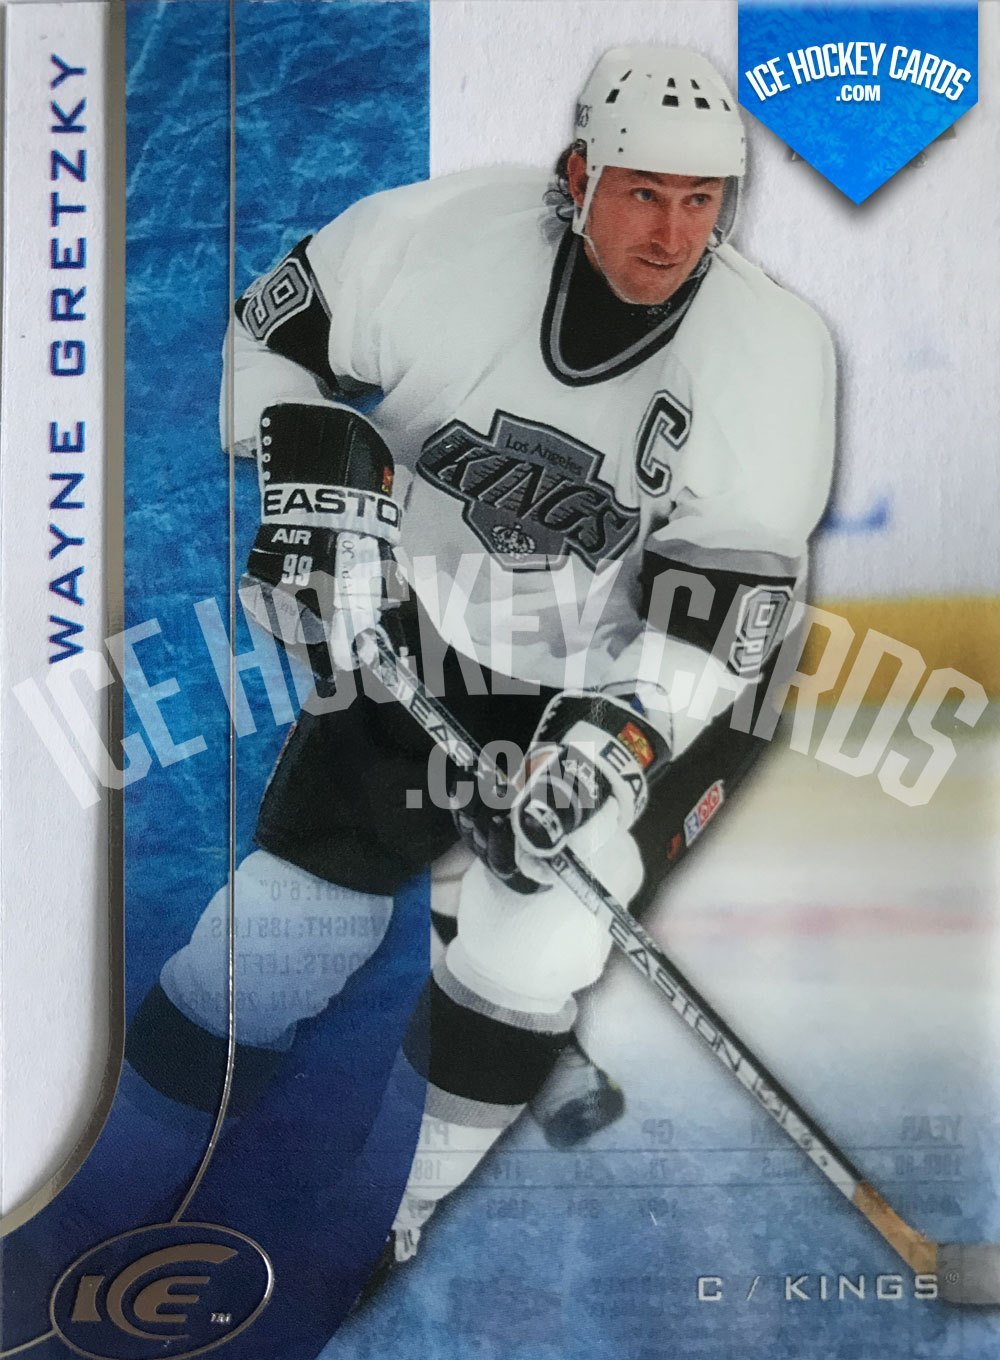 Upper Deck - ICE 15-16 - Wayne Gretzky Base Card